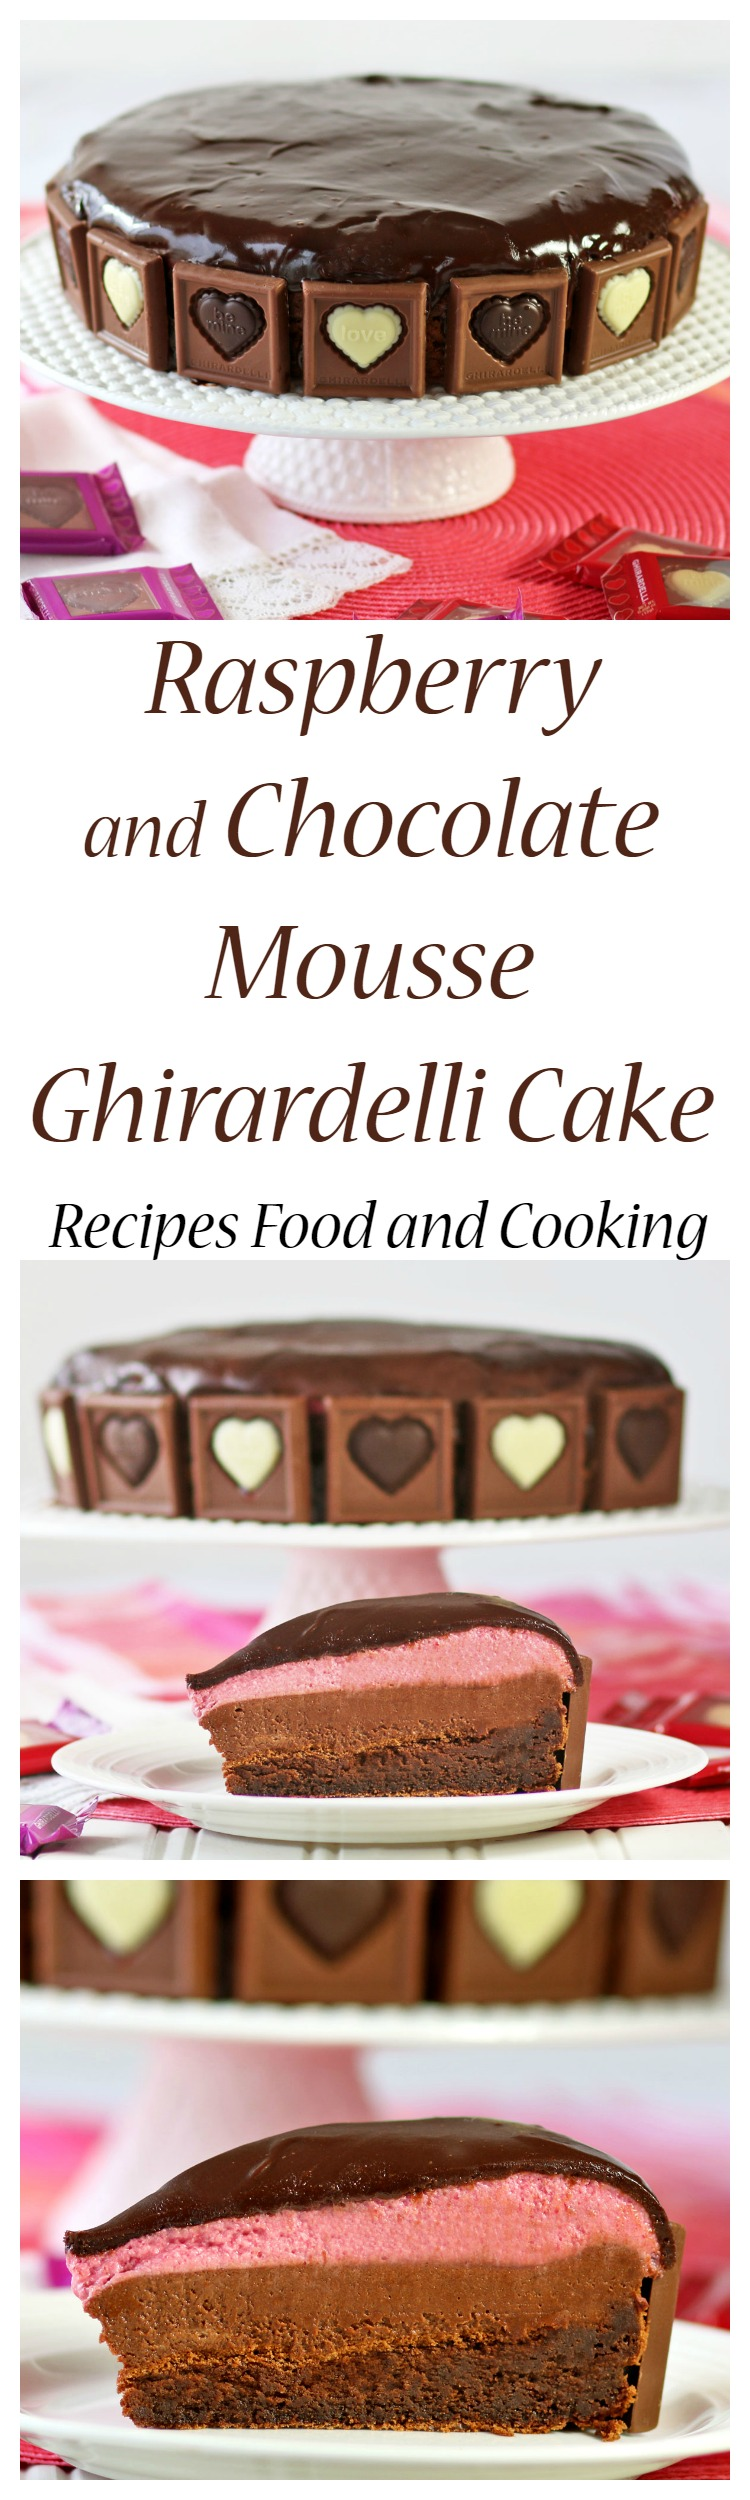 Raspberry and Chocolate Mousse Ghirardelli Cake - Recipes Food and ...